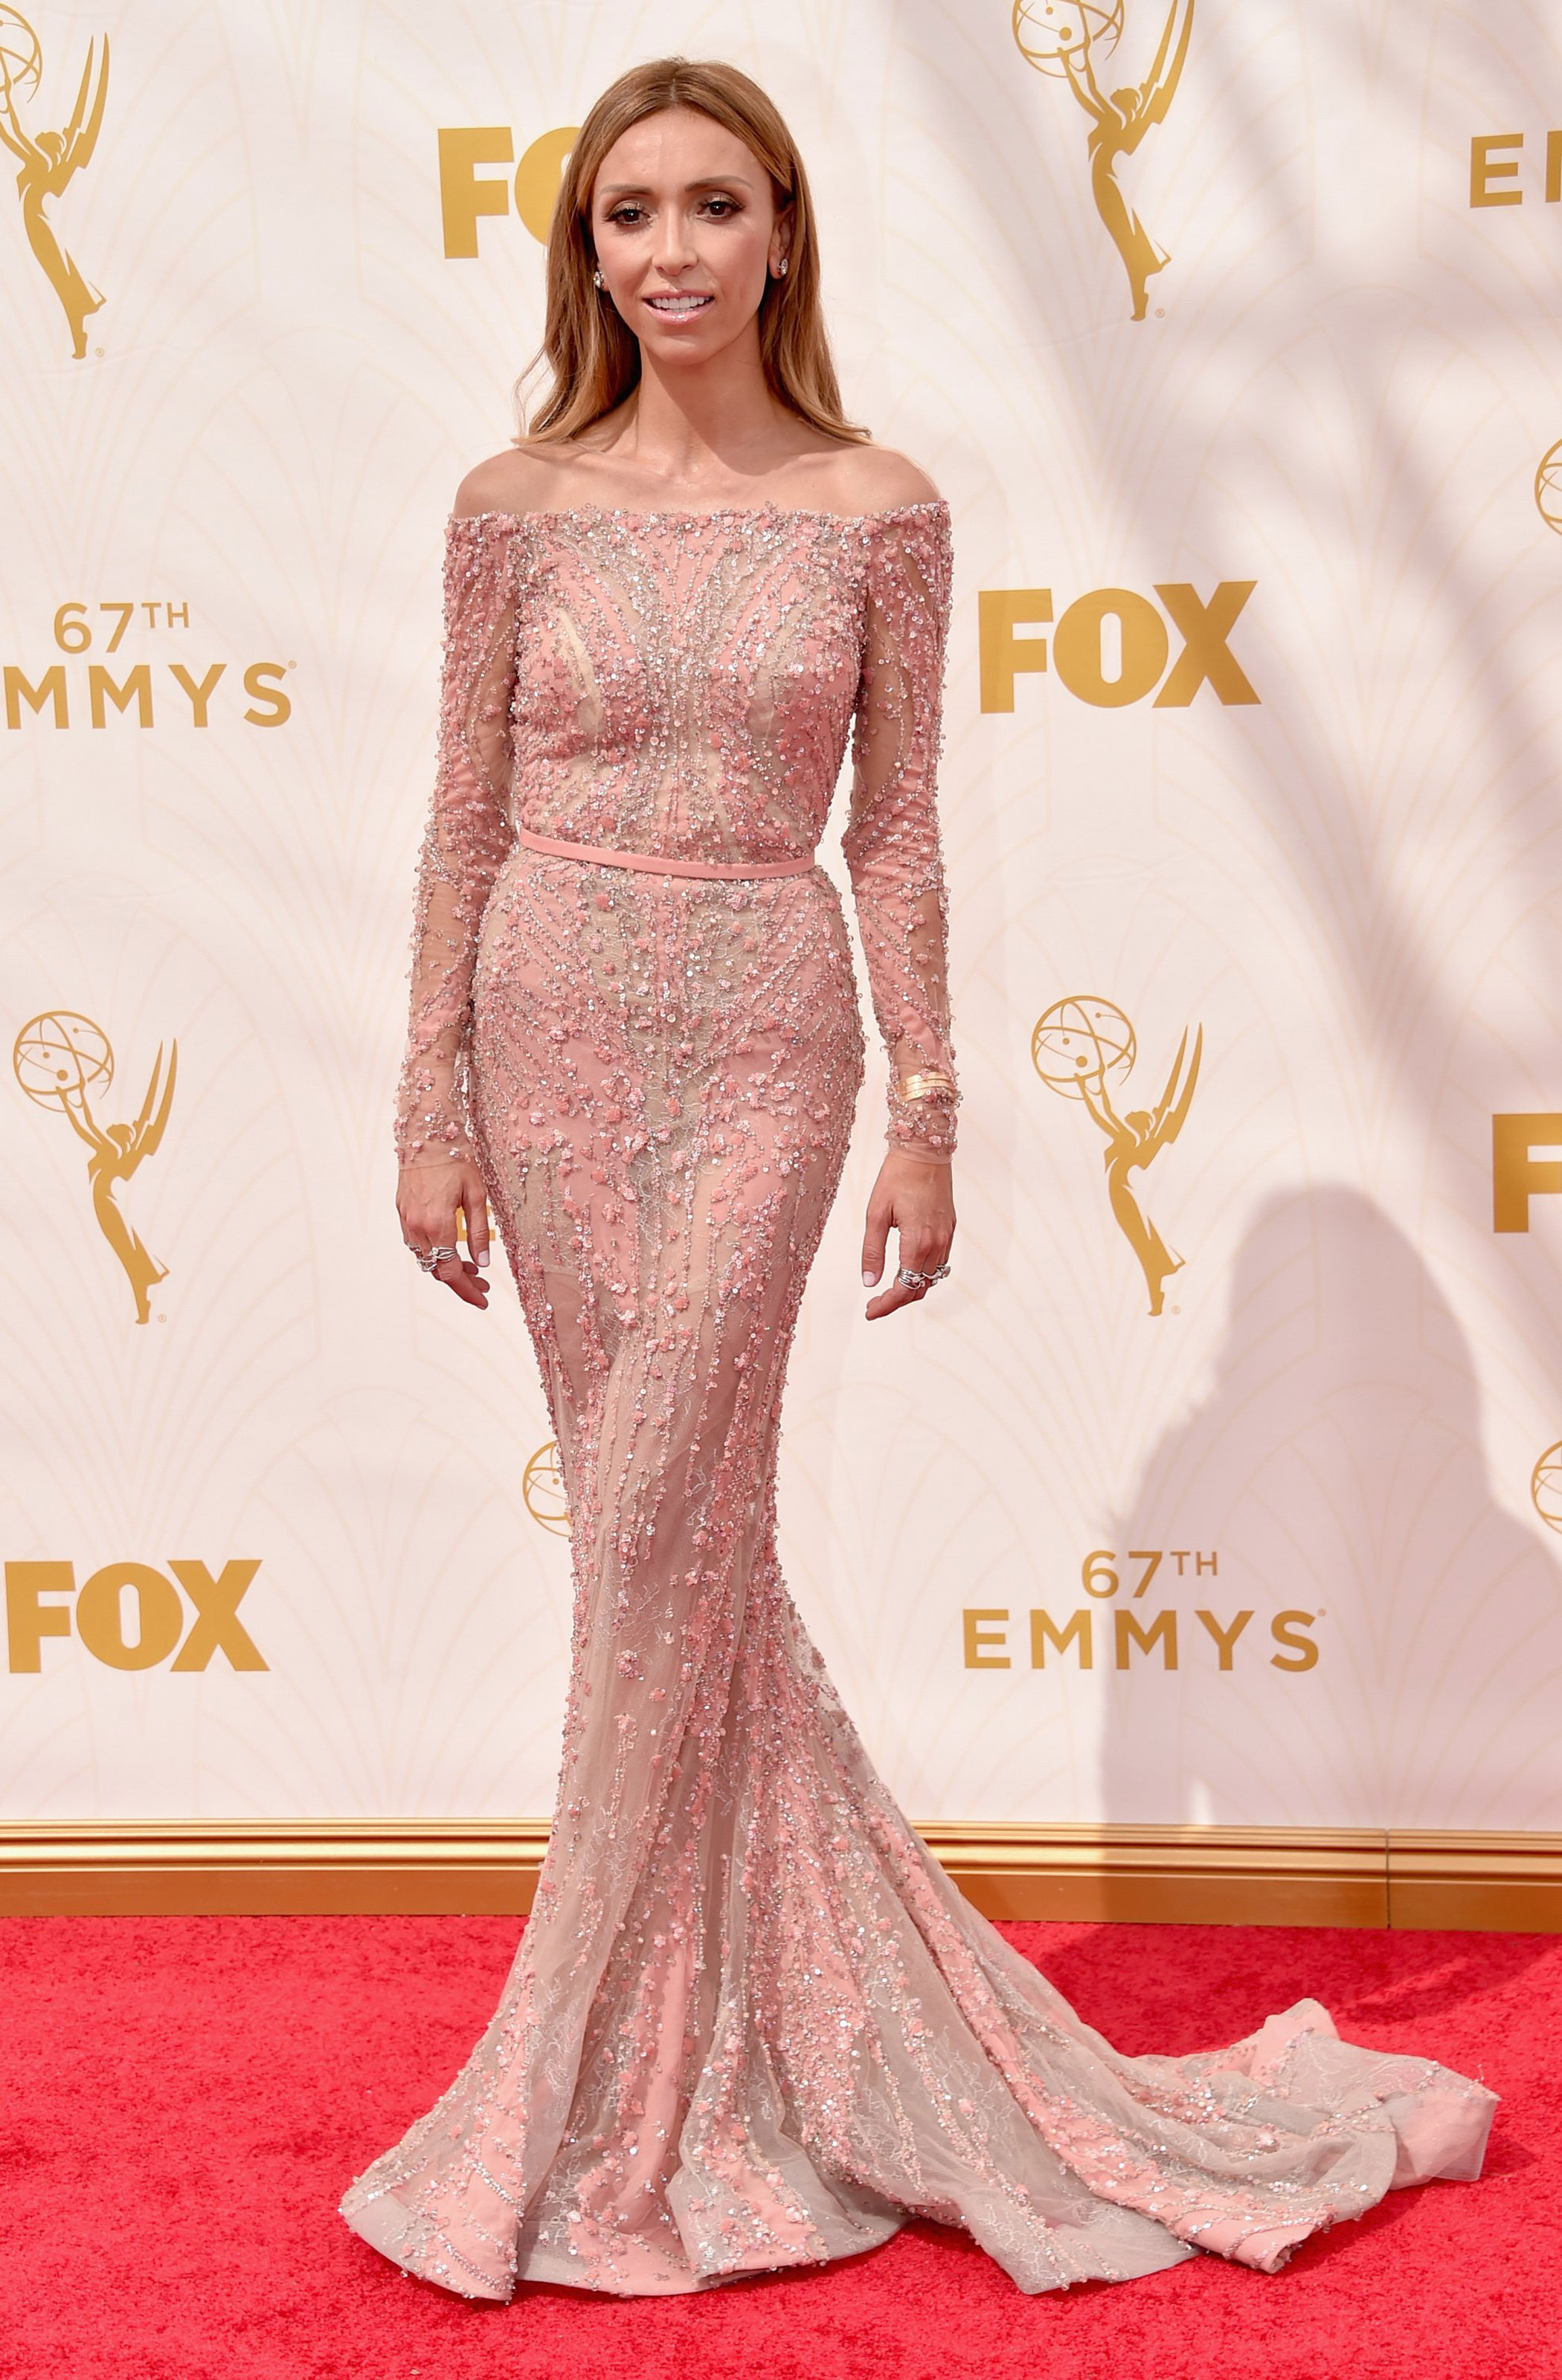 Giuliana Rancic at the 67th Emmy Award on Sept. 20, 2015 in Los Angeles.